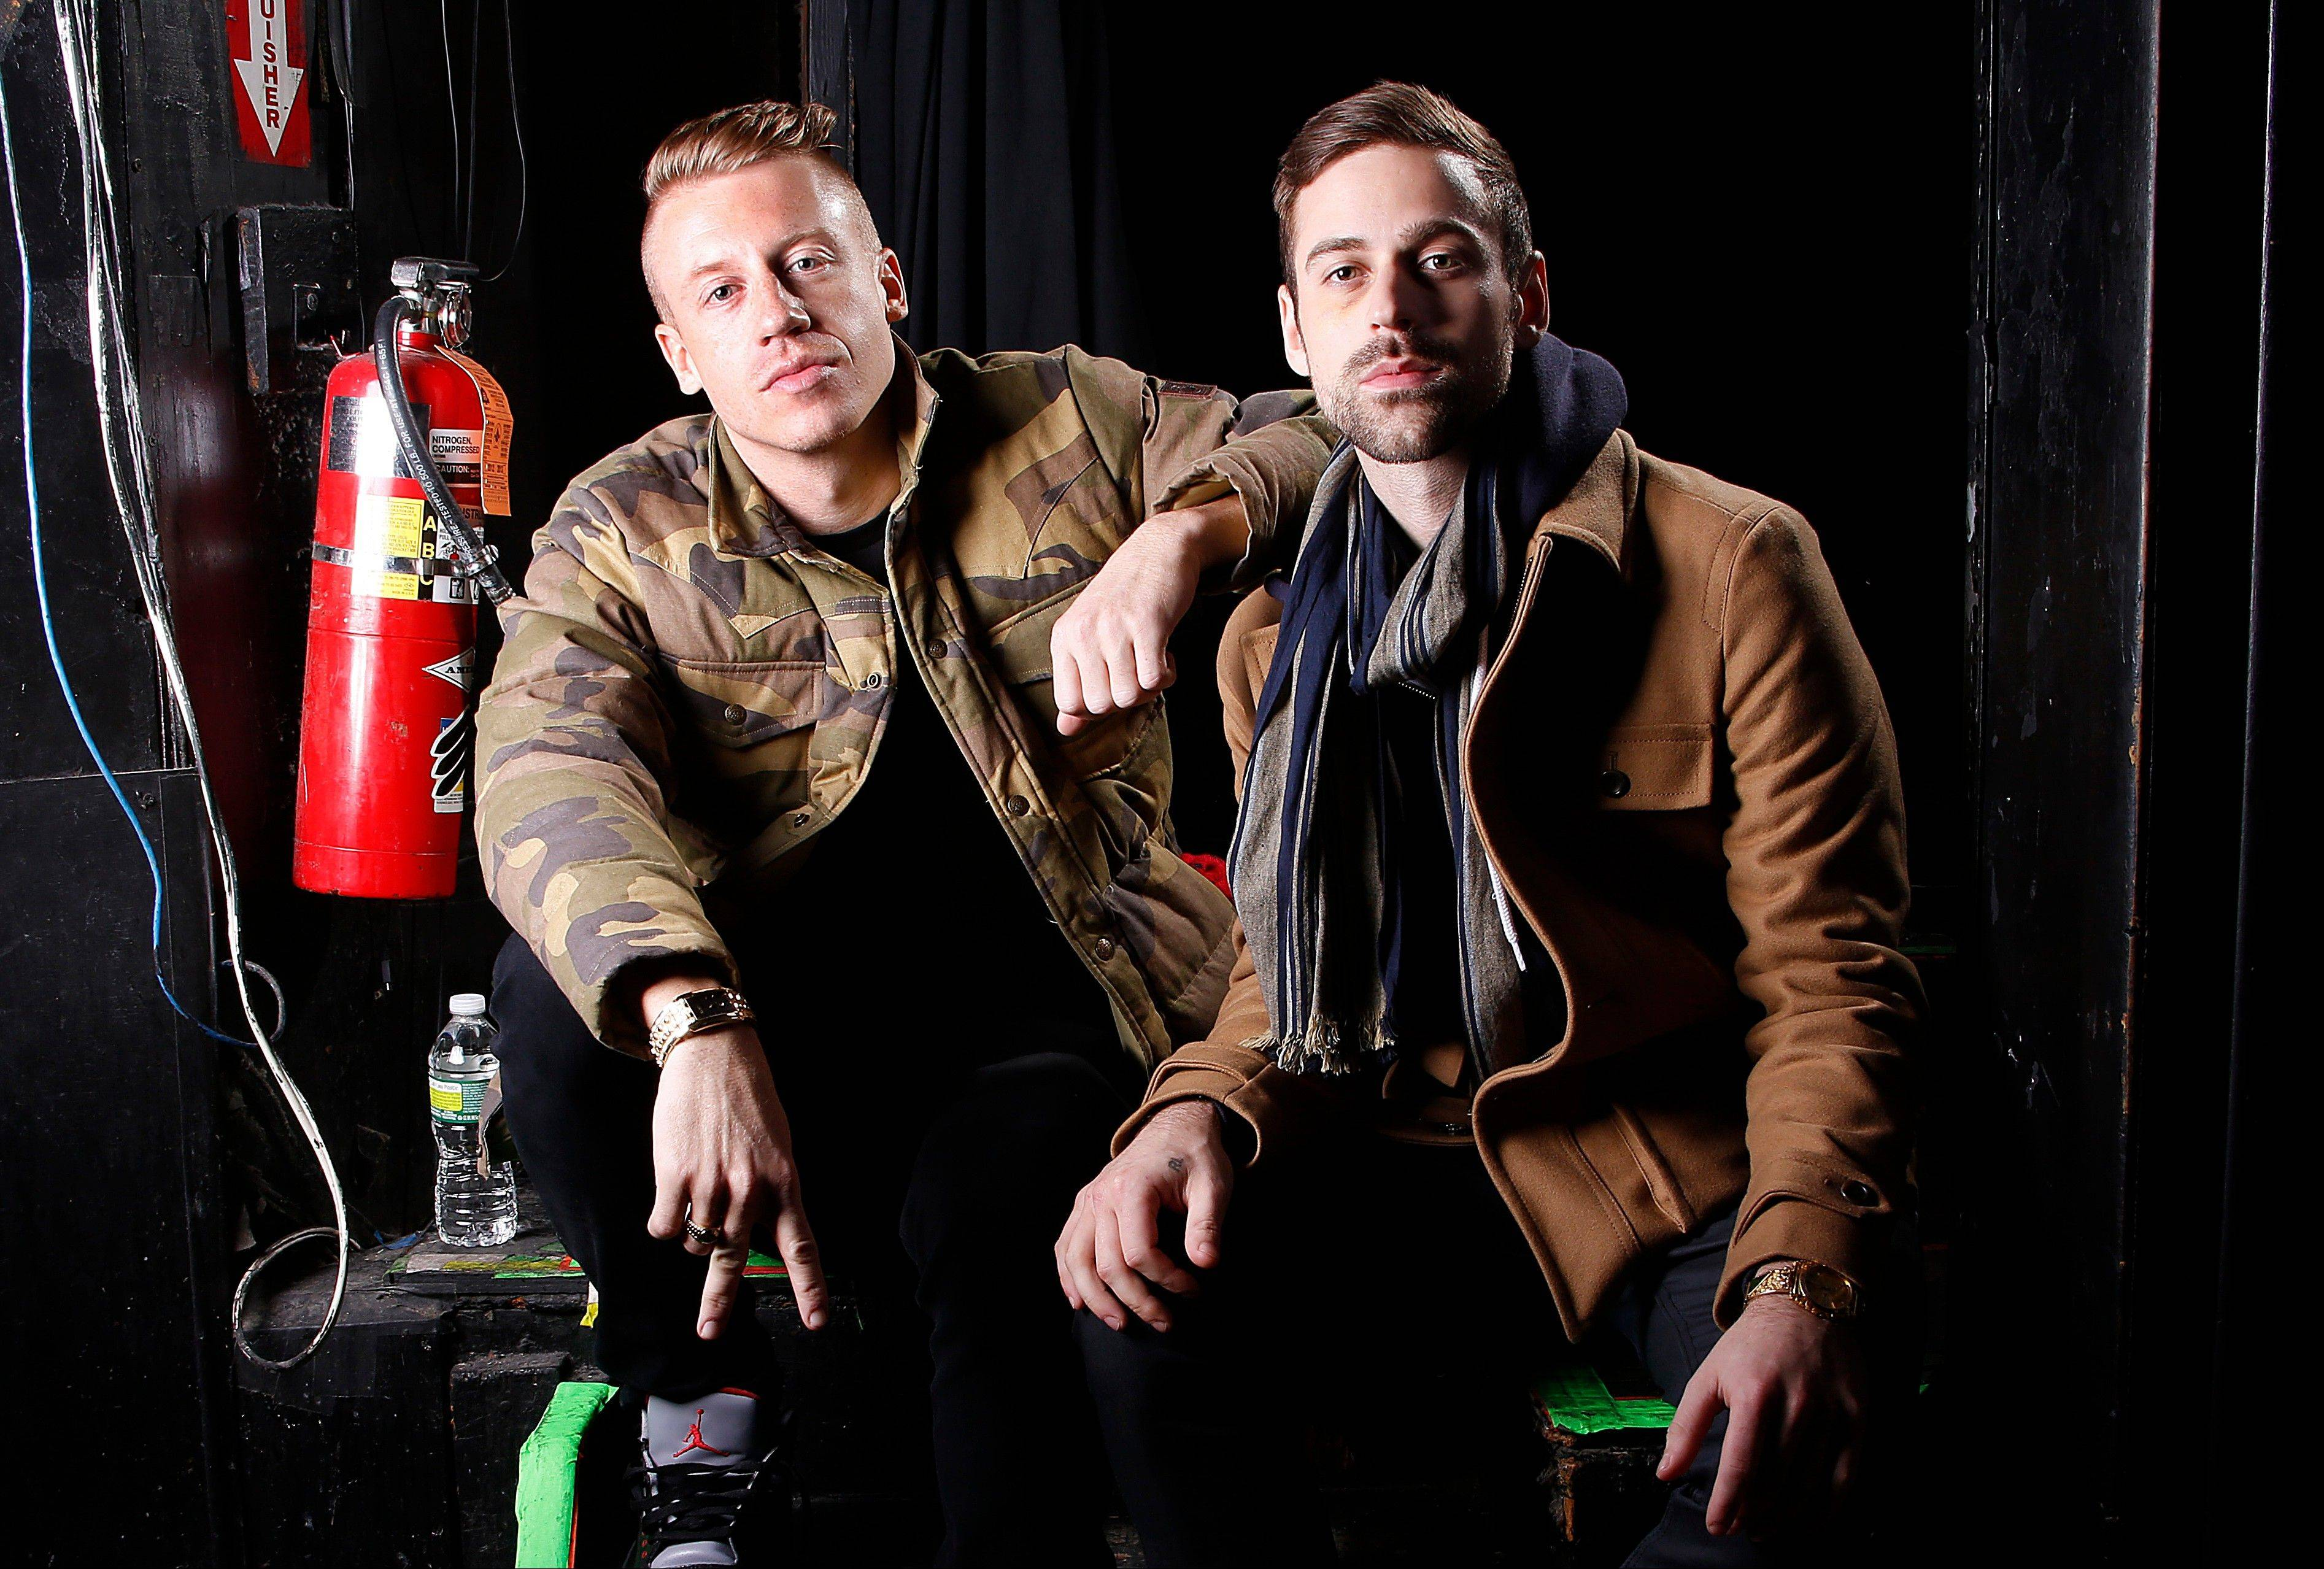 Newcomers Macklemore & Ryan Lewis will battle heavyweights Justin Timberlake and Taylor Swift for the top prize at the 2013 American Music Awards.